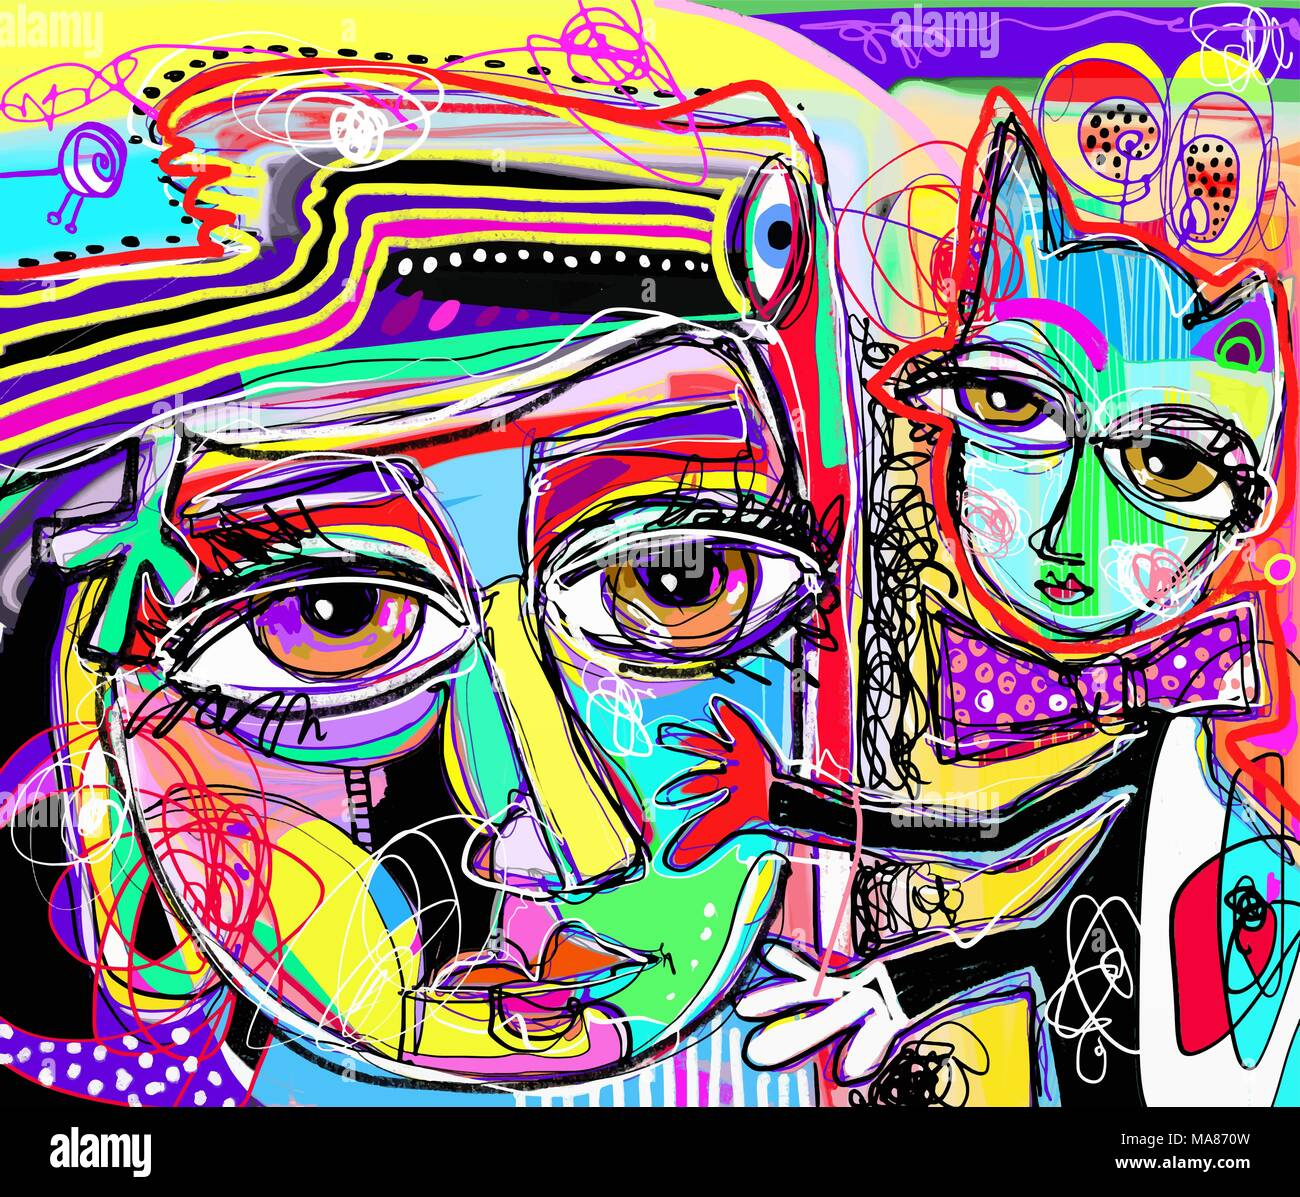 original abstract digital painting of human face with a cat